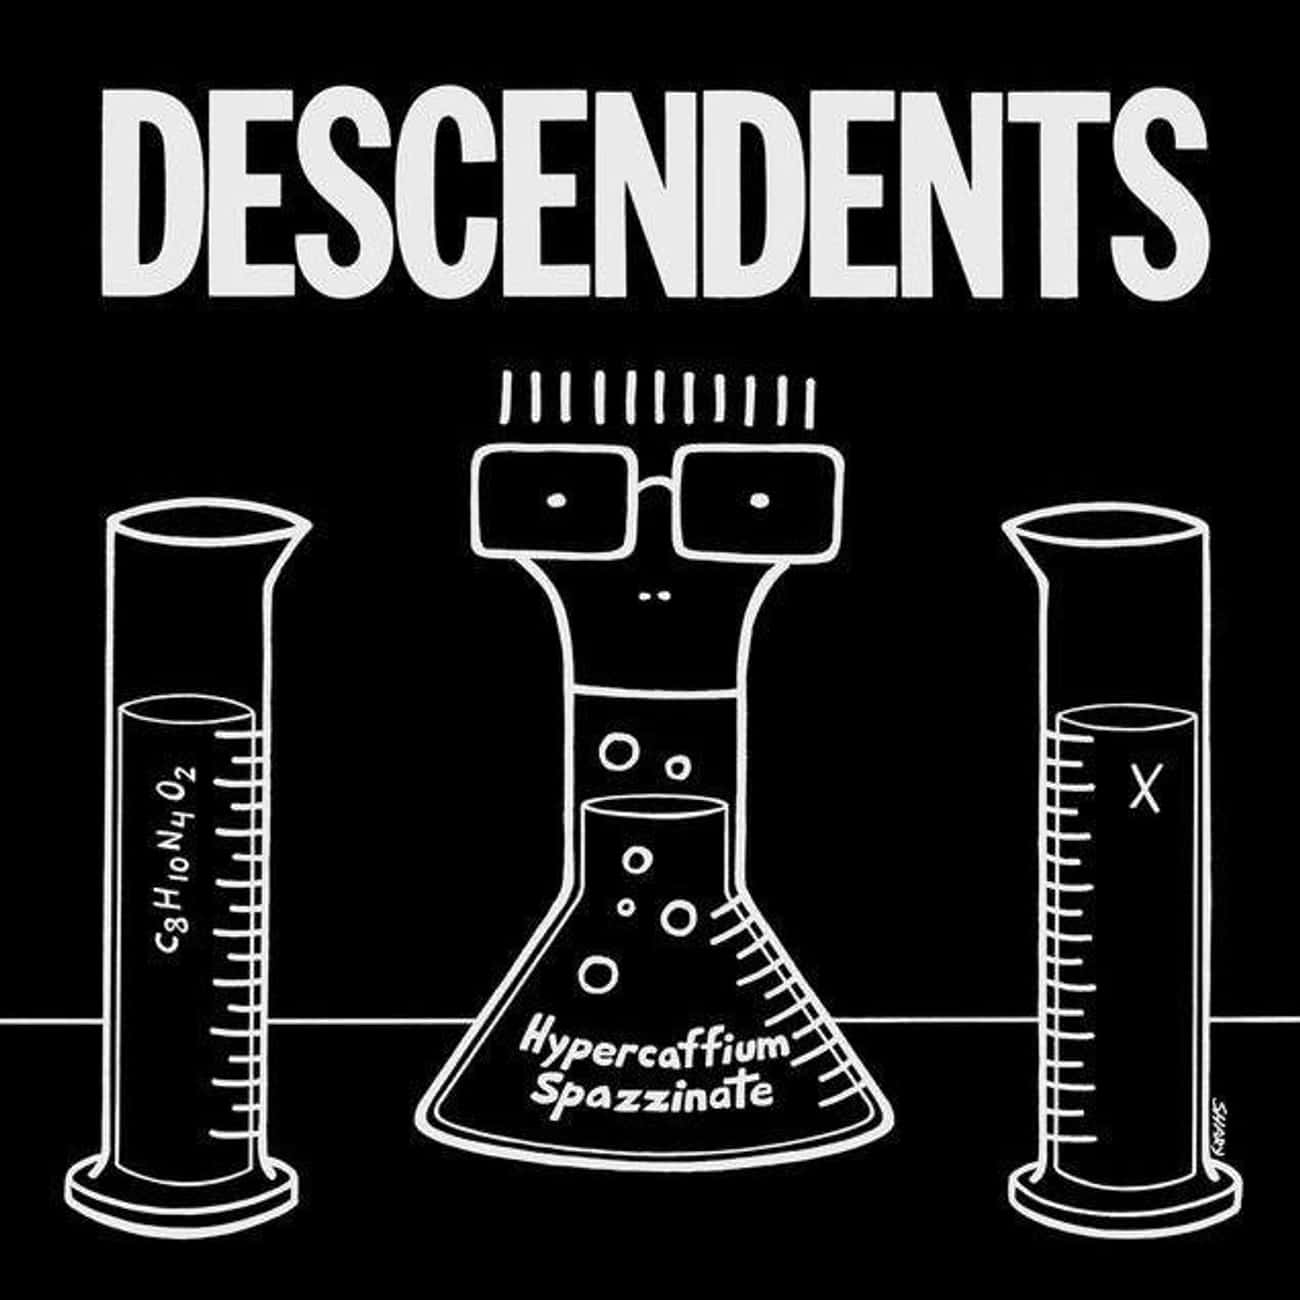 Hypercaffium Spazzinate is listed (or ranked) 4 on the list The Best Descendents Albums of All Time